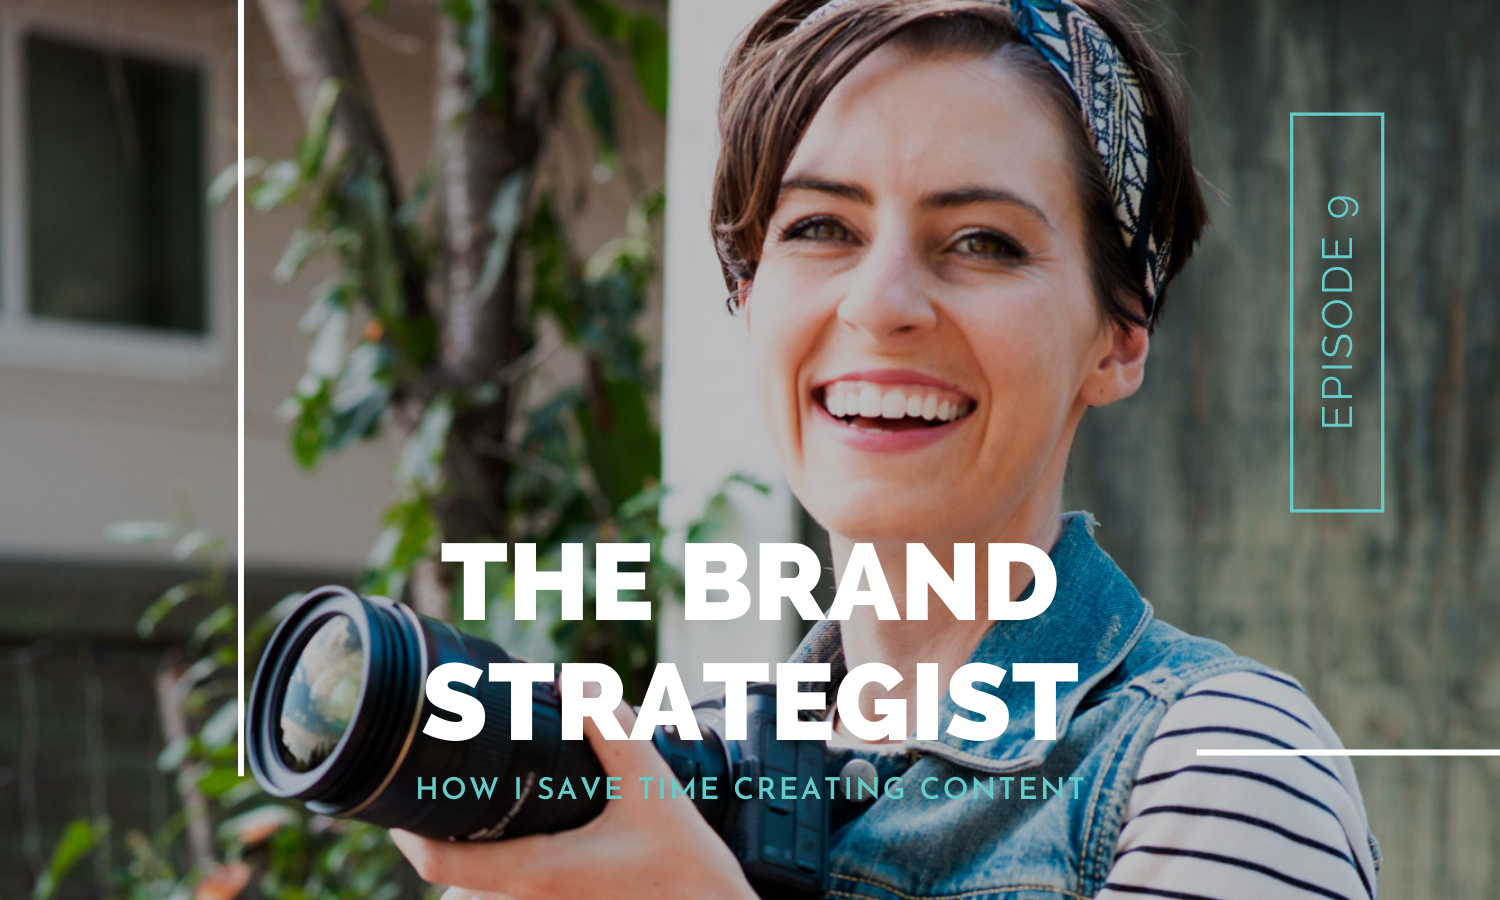 Save time creating content with The Brand Strategist